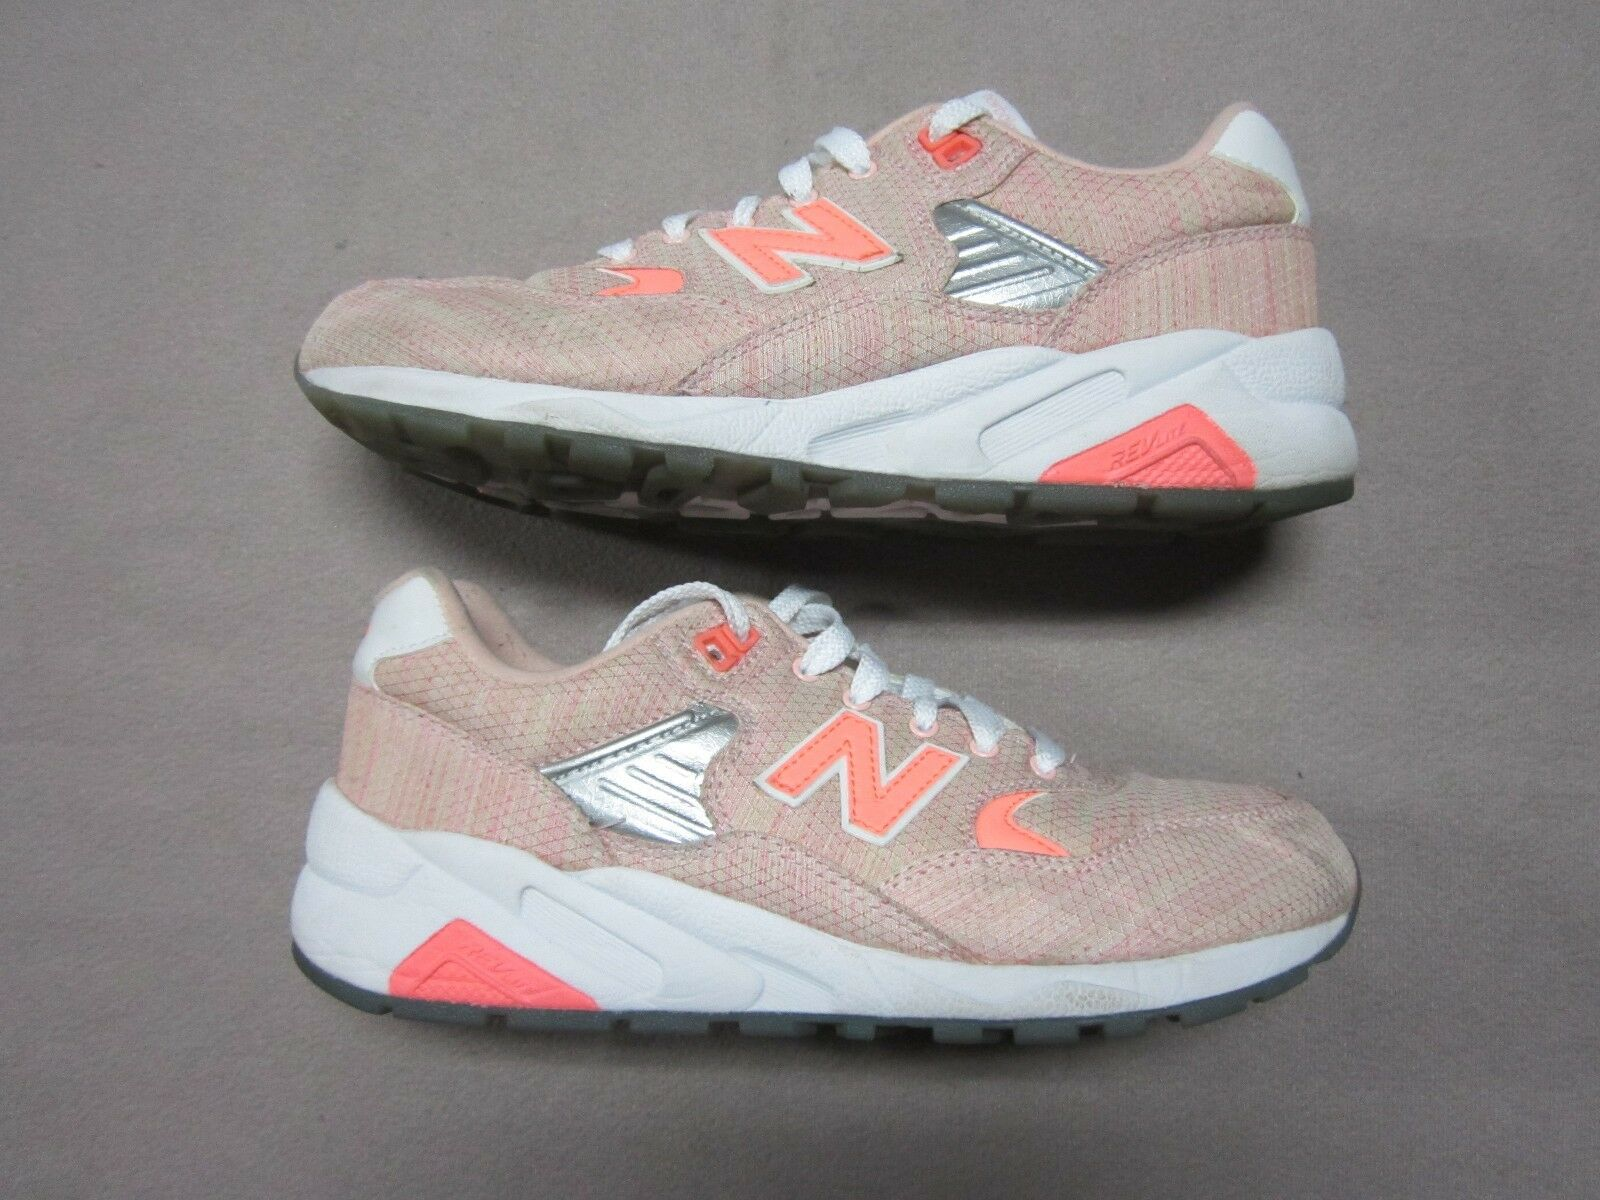 NEW BALANCE WOMENS 580 ELITE EDITION CORAL SORBET SHOES SIZE 7 WRT580IK PREOWNED